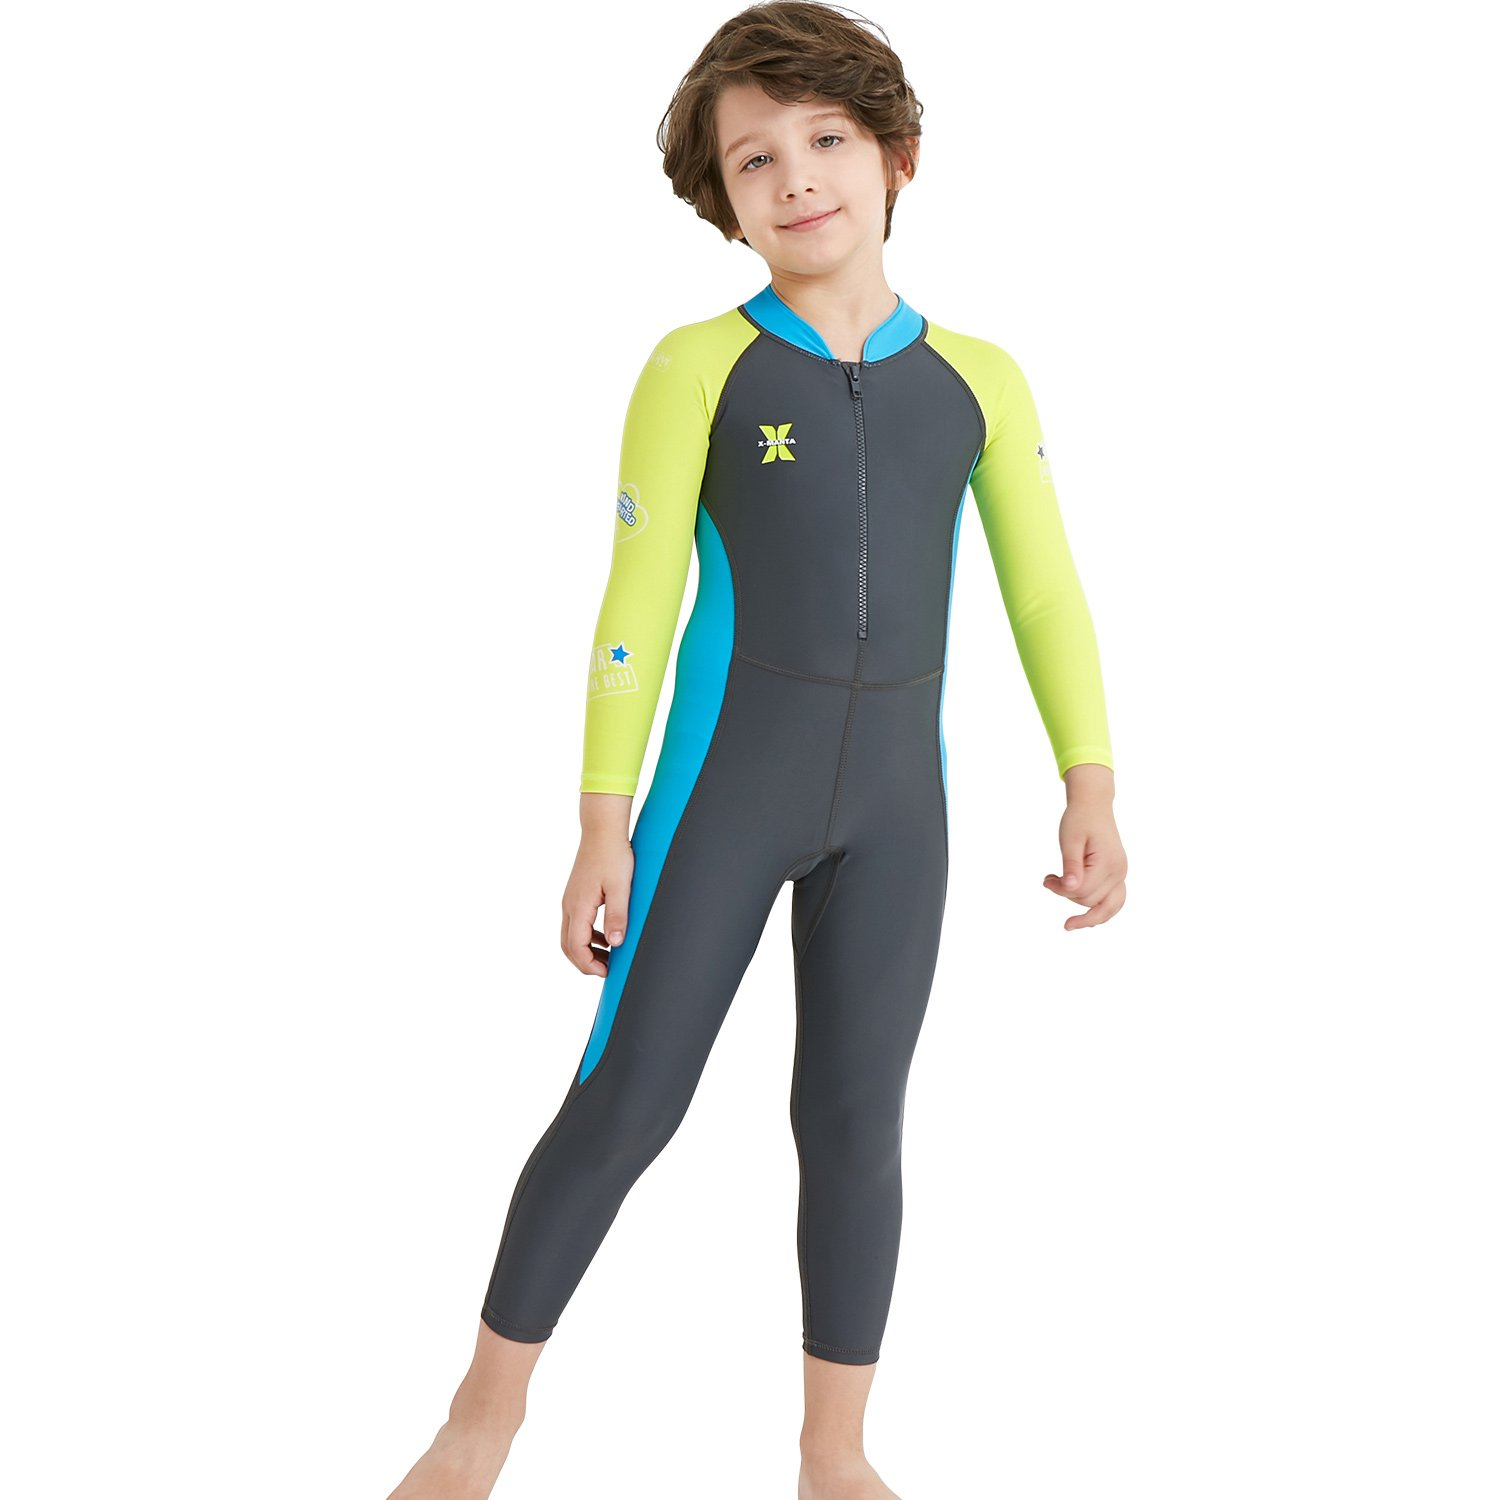 428f4d30a73da Amazon.com: DIVE & SAIL Girls Long Sleeve Rash Guard UPF 50+ Full Swimsuit  for Boys Kids: Sports & Outdoors